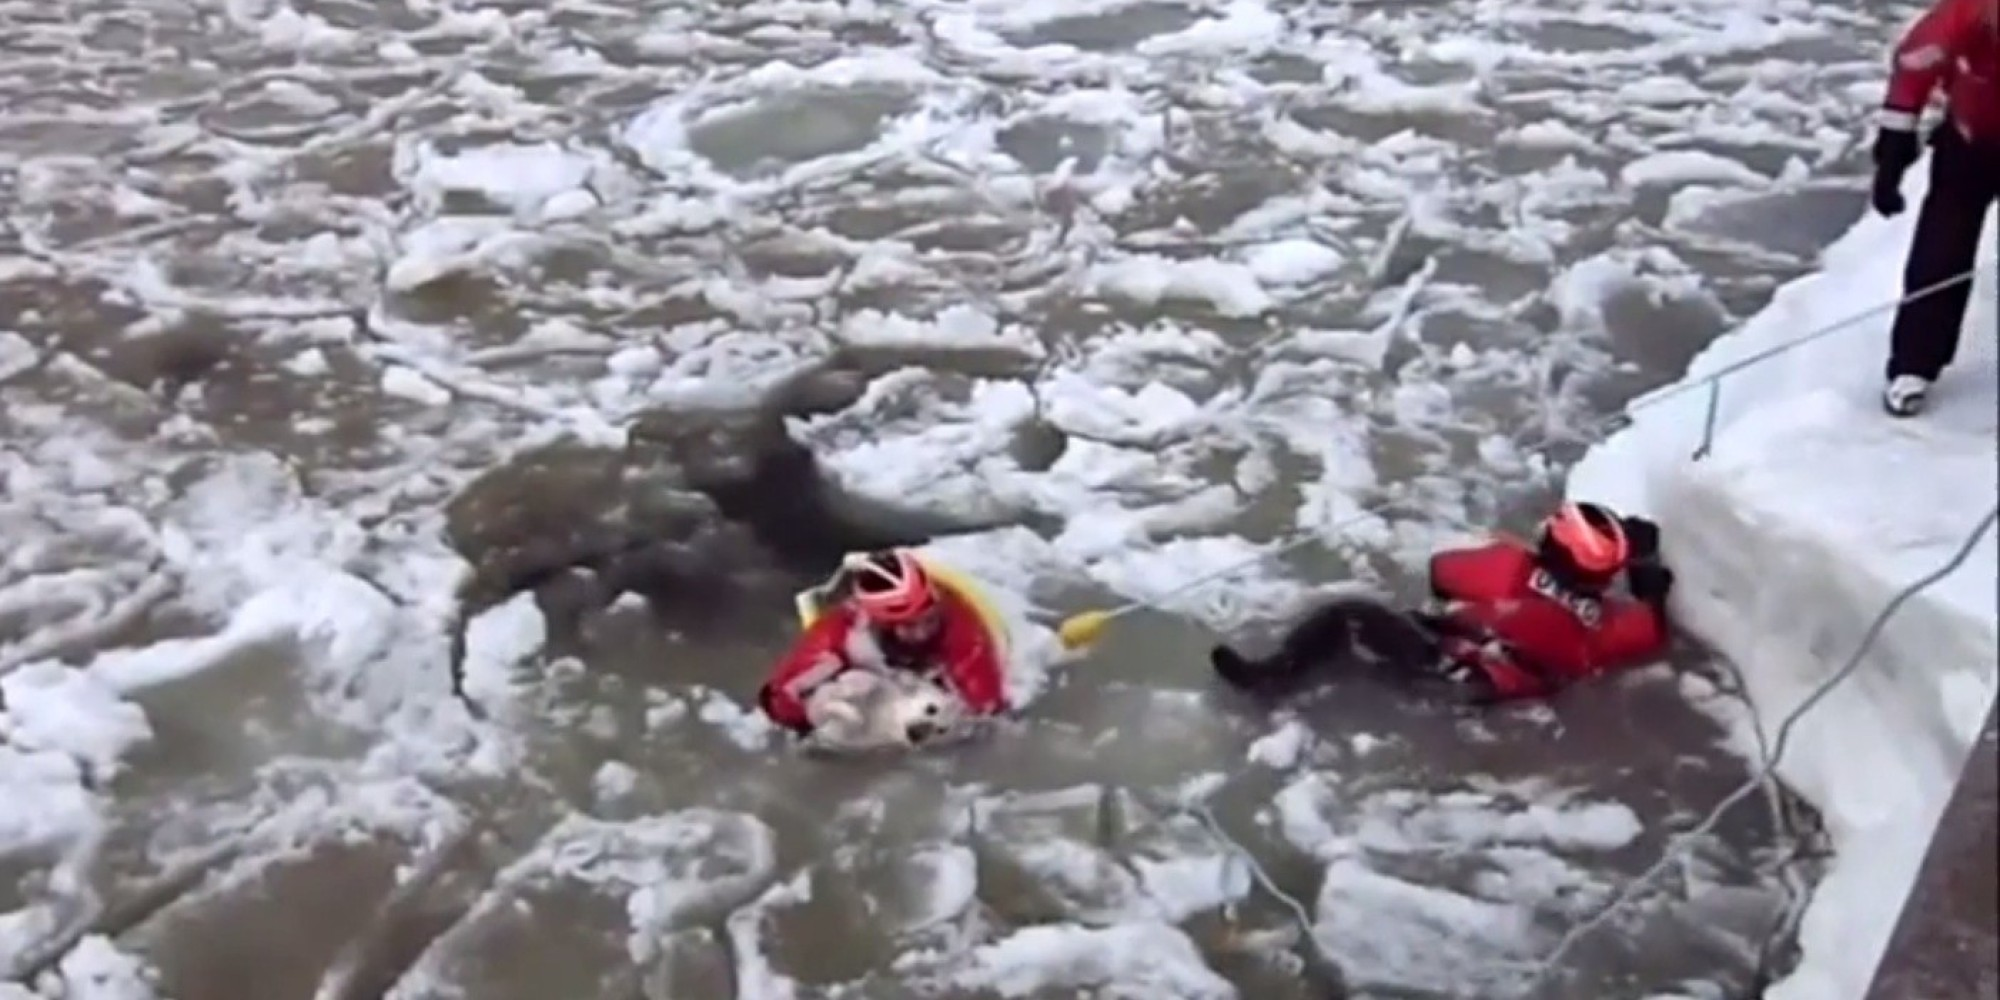 Coast Guard Rescues Dog From Icy Waters In Michigan Huffpost